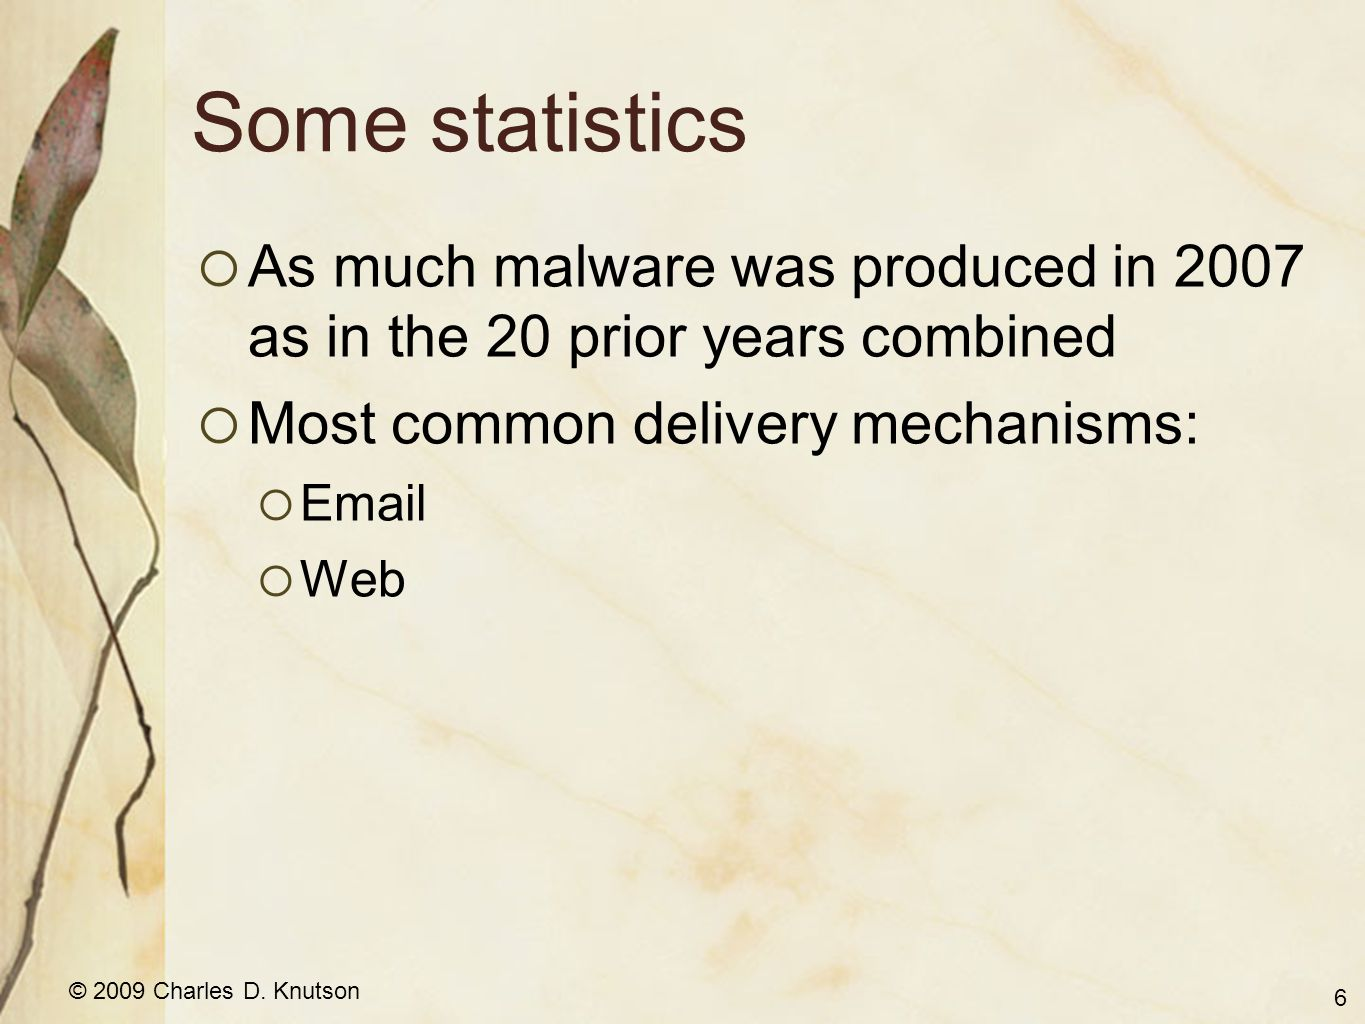 © 2009 Charles D. Knutson Some statistics As much malware was produced in 2007 as in the 20 prior years combined Most common delivery mechanisms: Emai